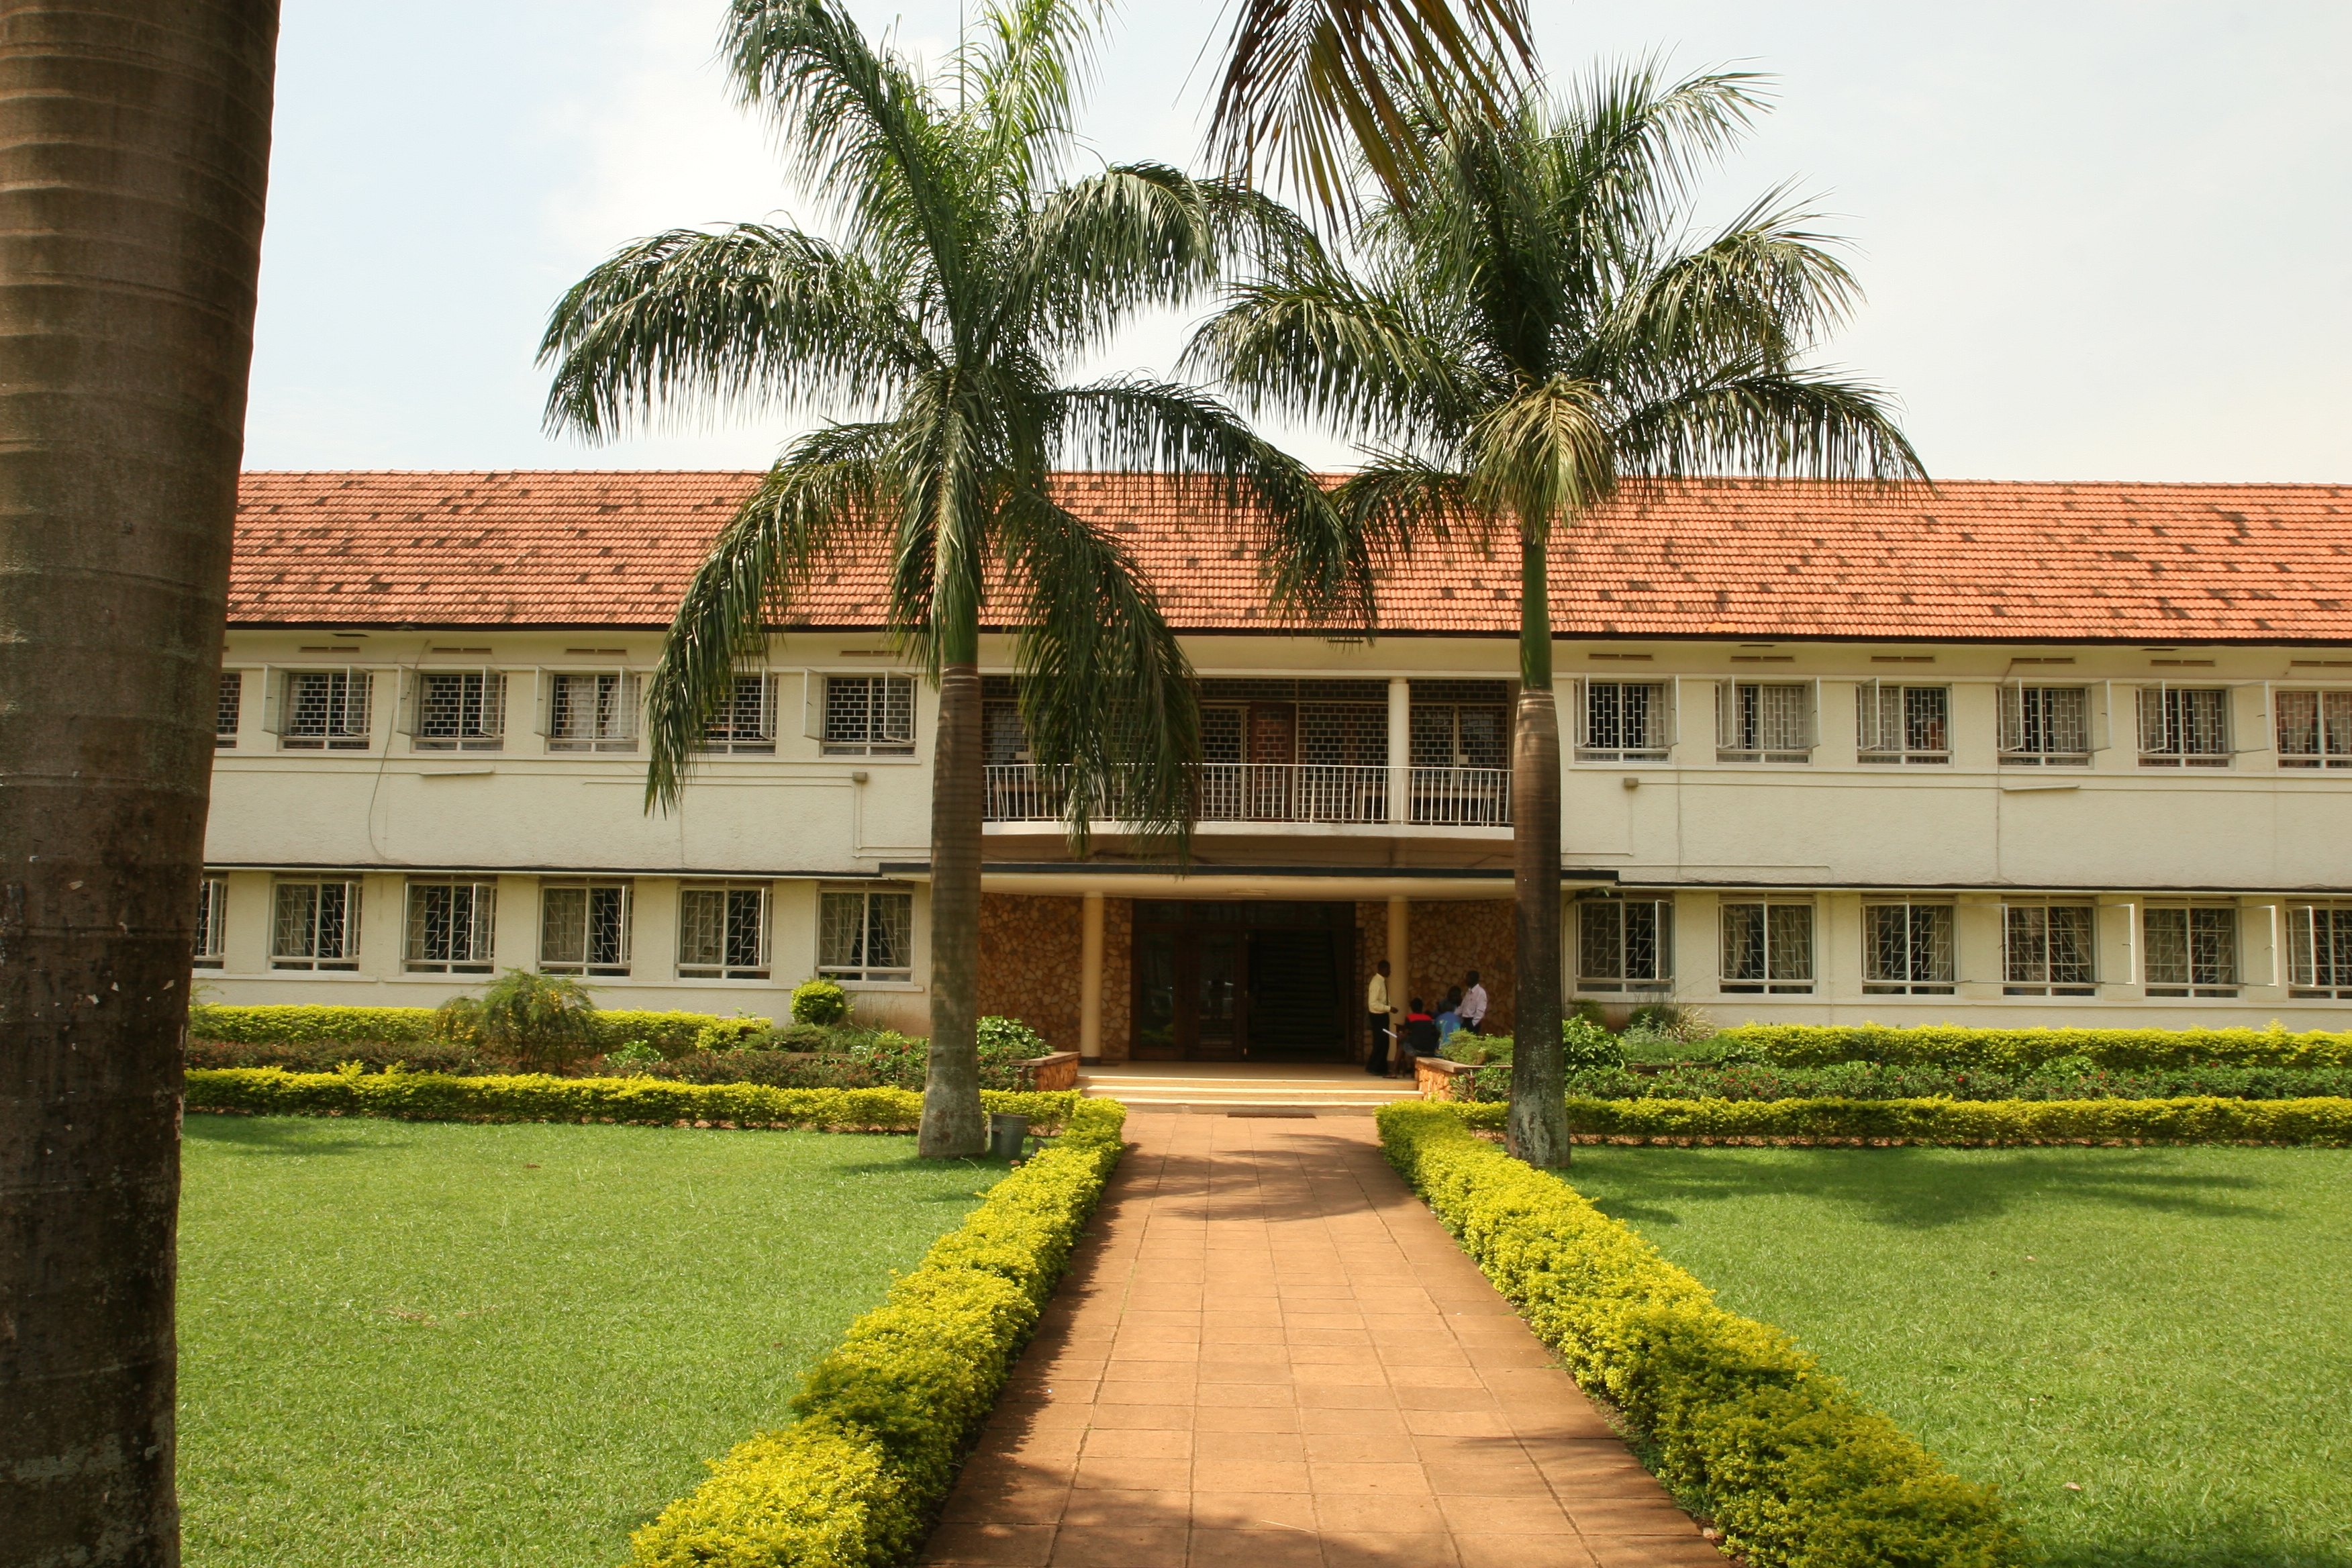 The School of Agricultural Sciences, College of Agricultural and Environmental Sciences (CAES), Makerere University, Kampala Uganda